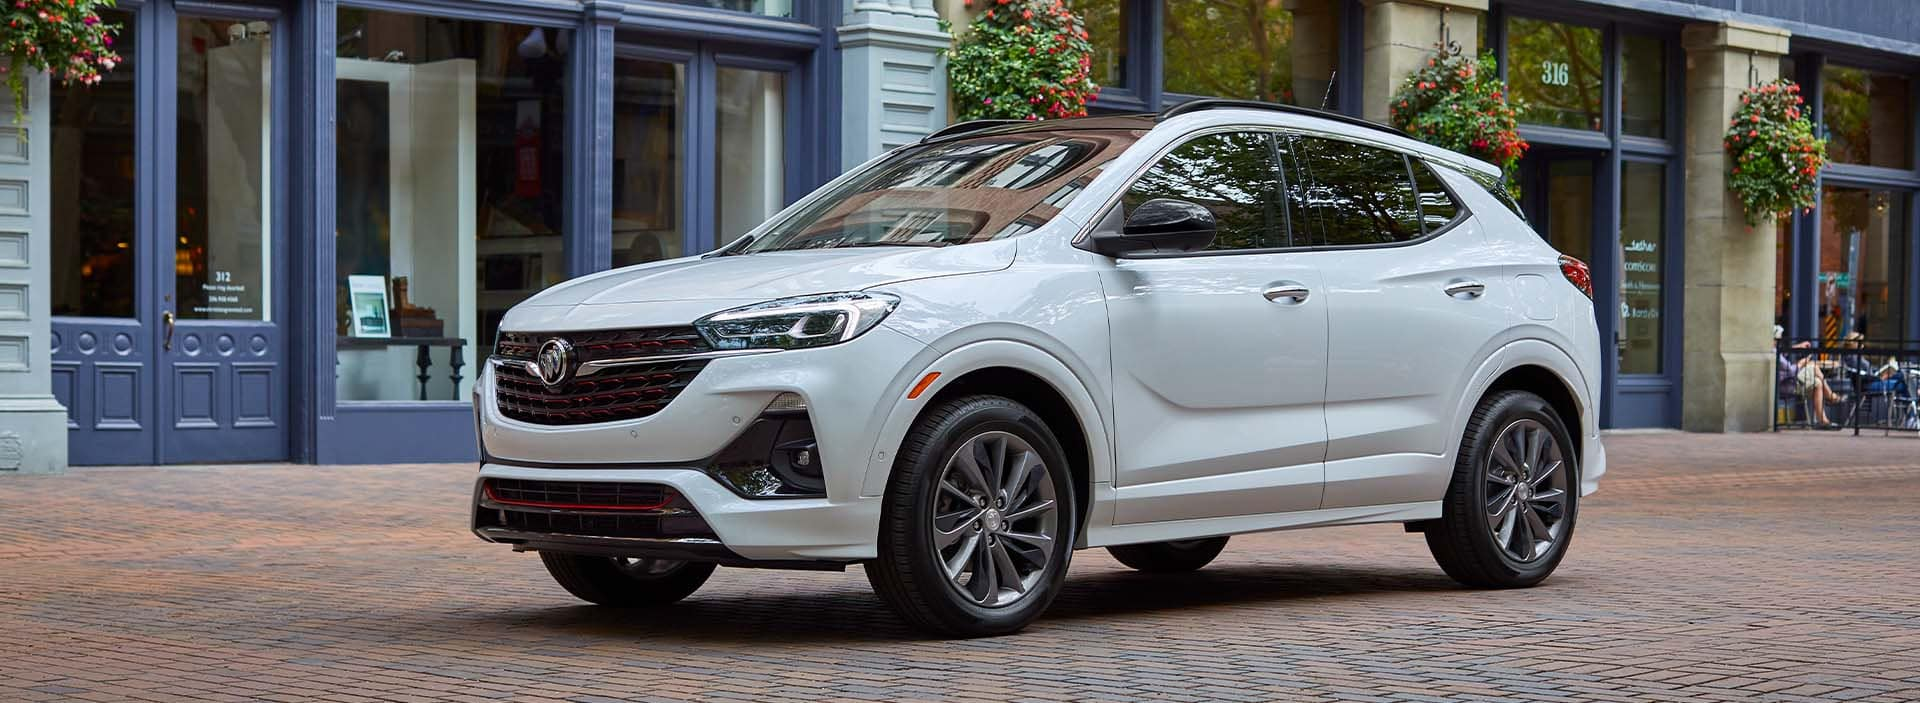 Model Features of the 2022 Buick Encore GX at Jack Giambalvo Buick-GMC | White 2022 Buick Encore GX Street Parked in City